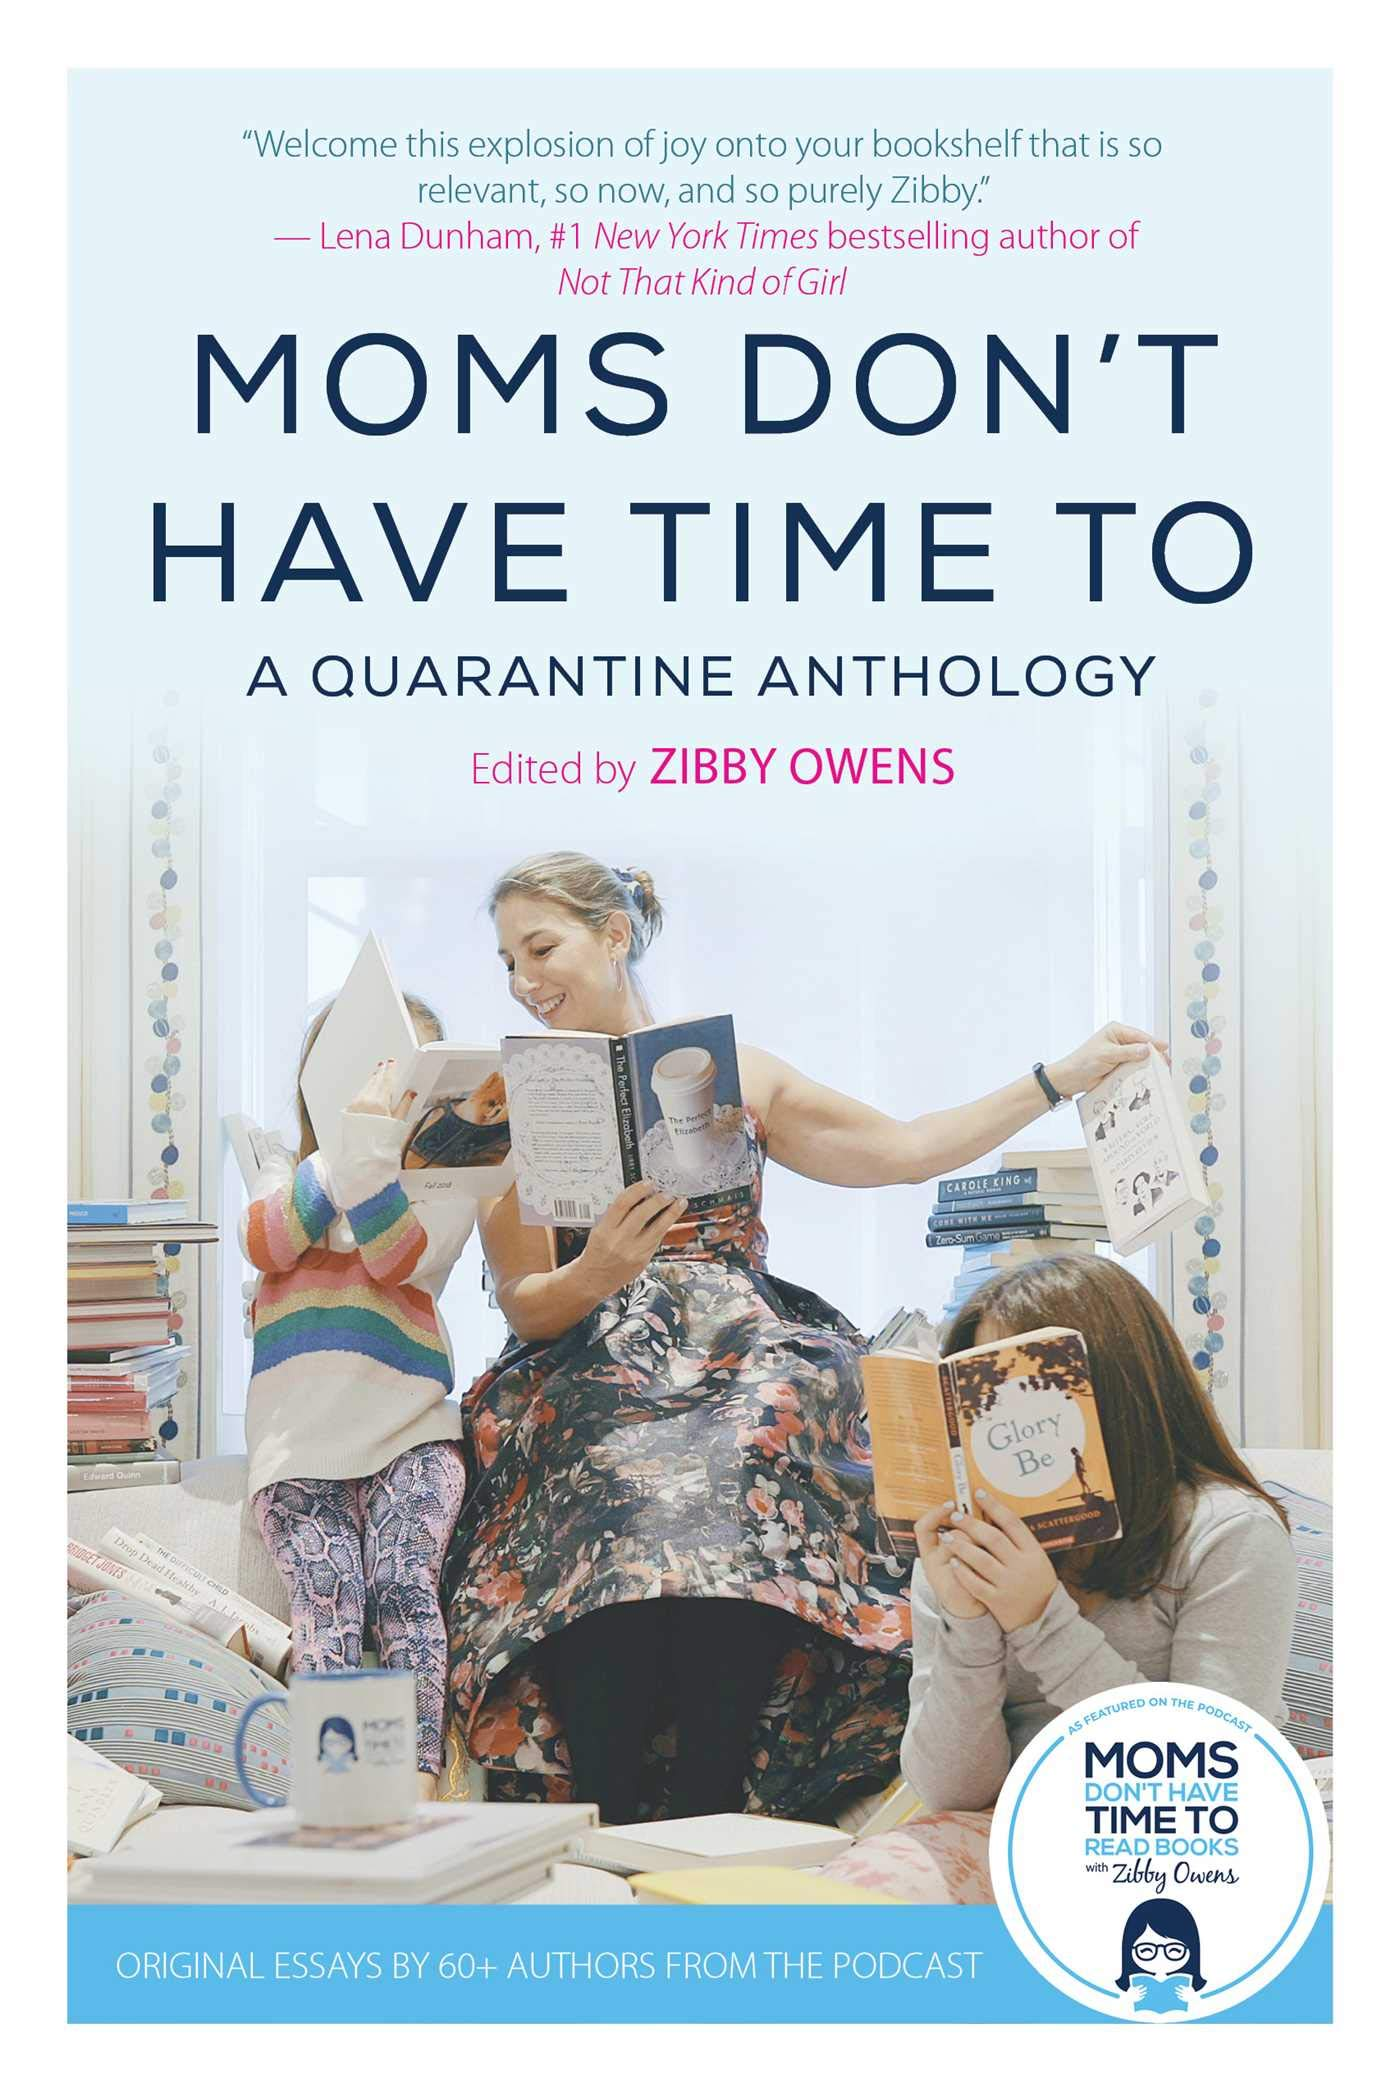 Moms Don't Have Time To: A Quarantine Anthology by Zibby Owens